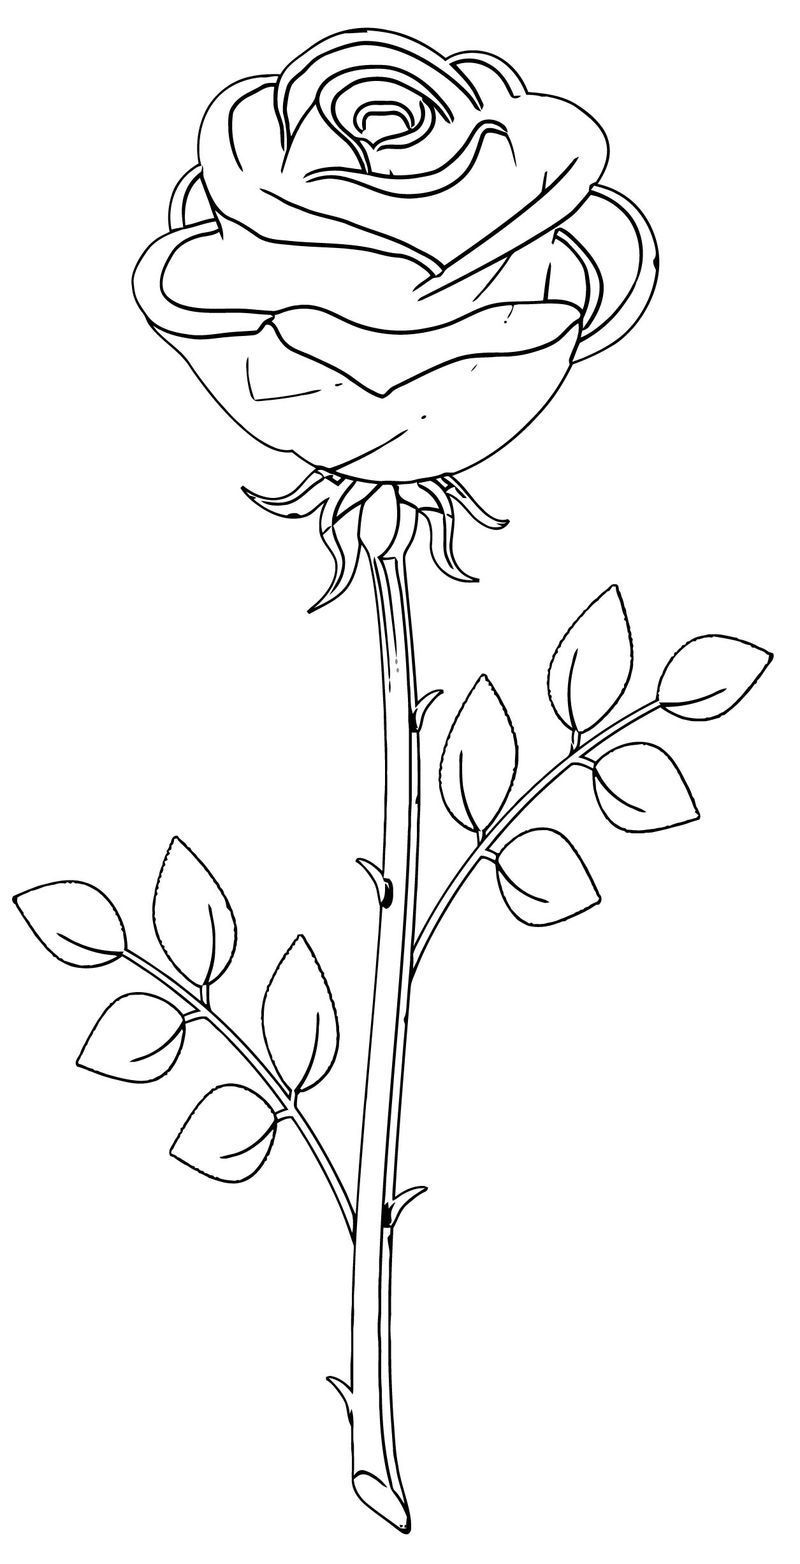 Rose Flower Coloring Page 020 Rose Coloring Pages Flower Coloring Pages Rose Flower Colors